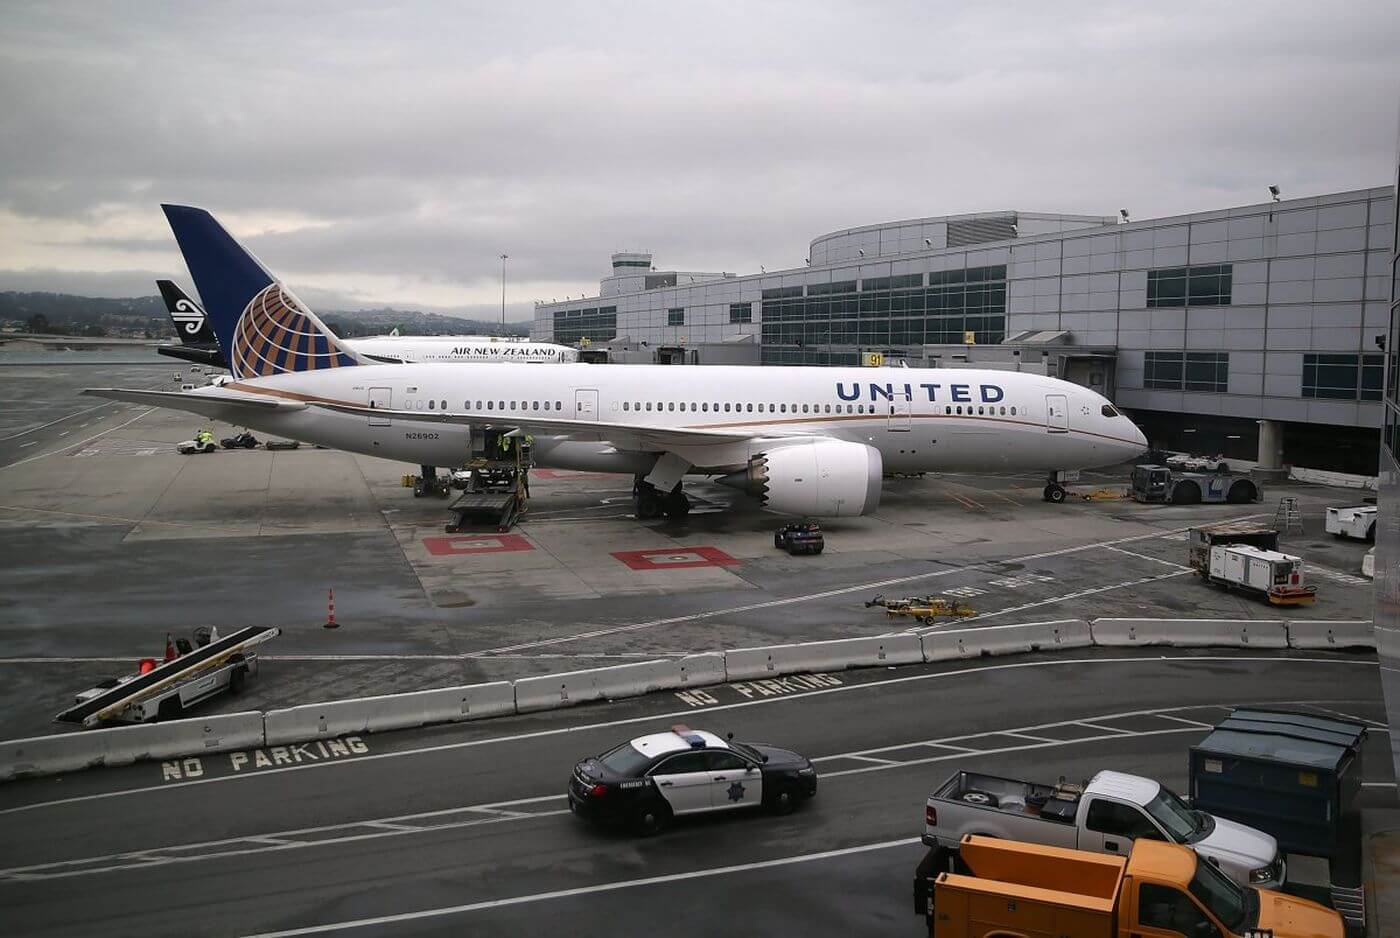 United Airlines investigates after a worker found in cargo hold following the flight from Charlotte to Washington, D.C.